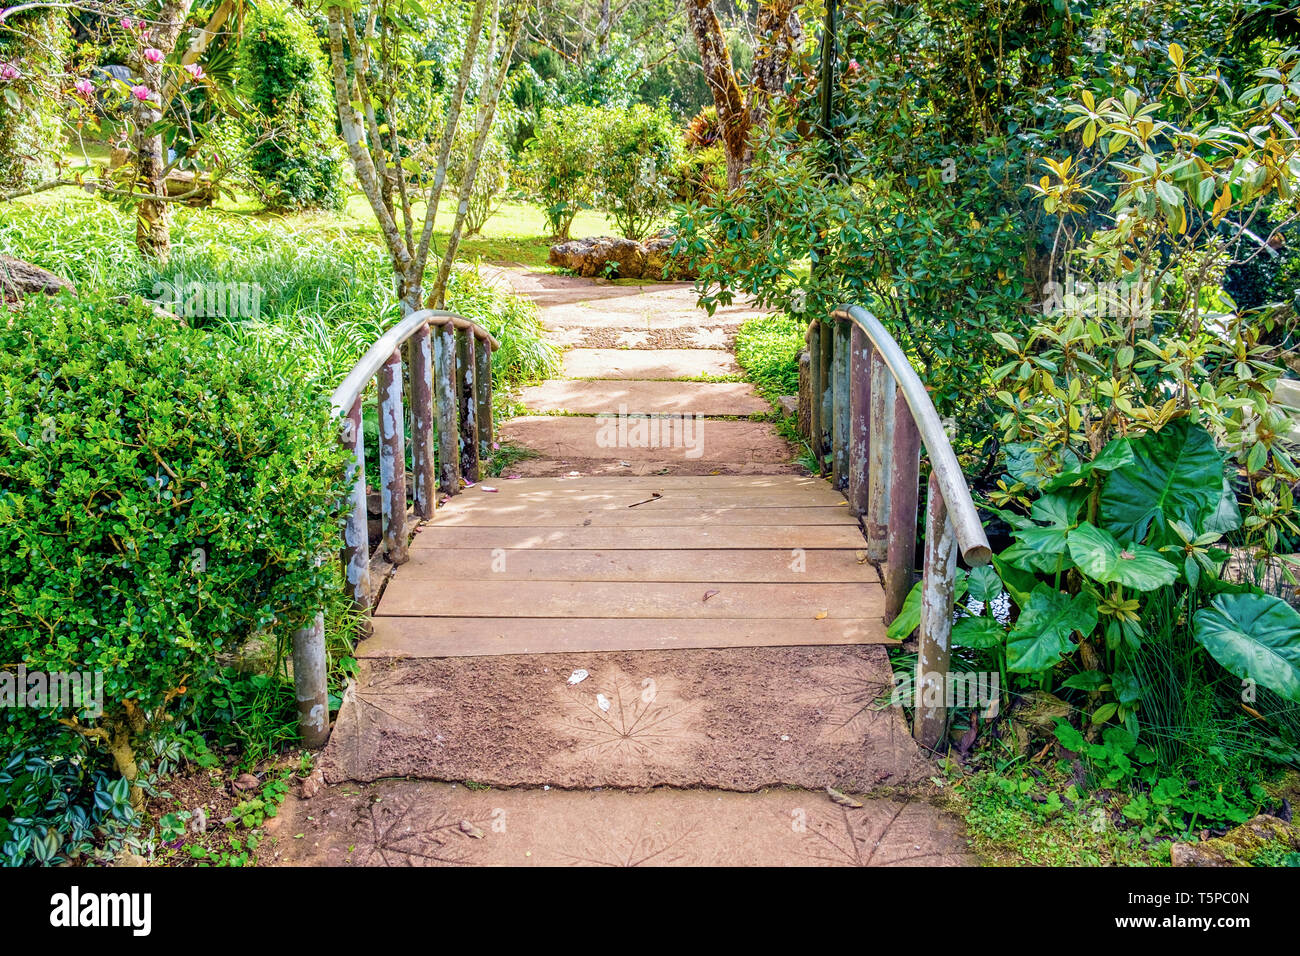 Walkway bridge sylvan in garden - Stock Image